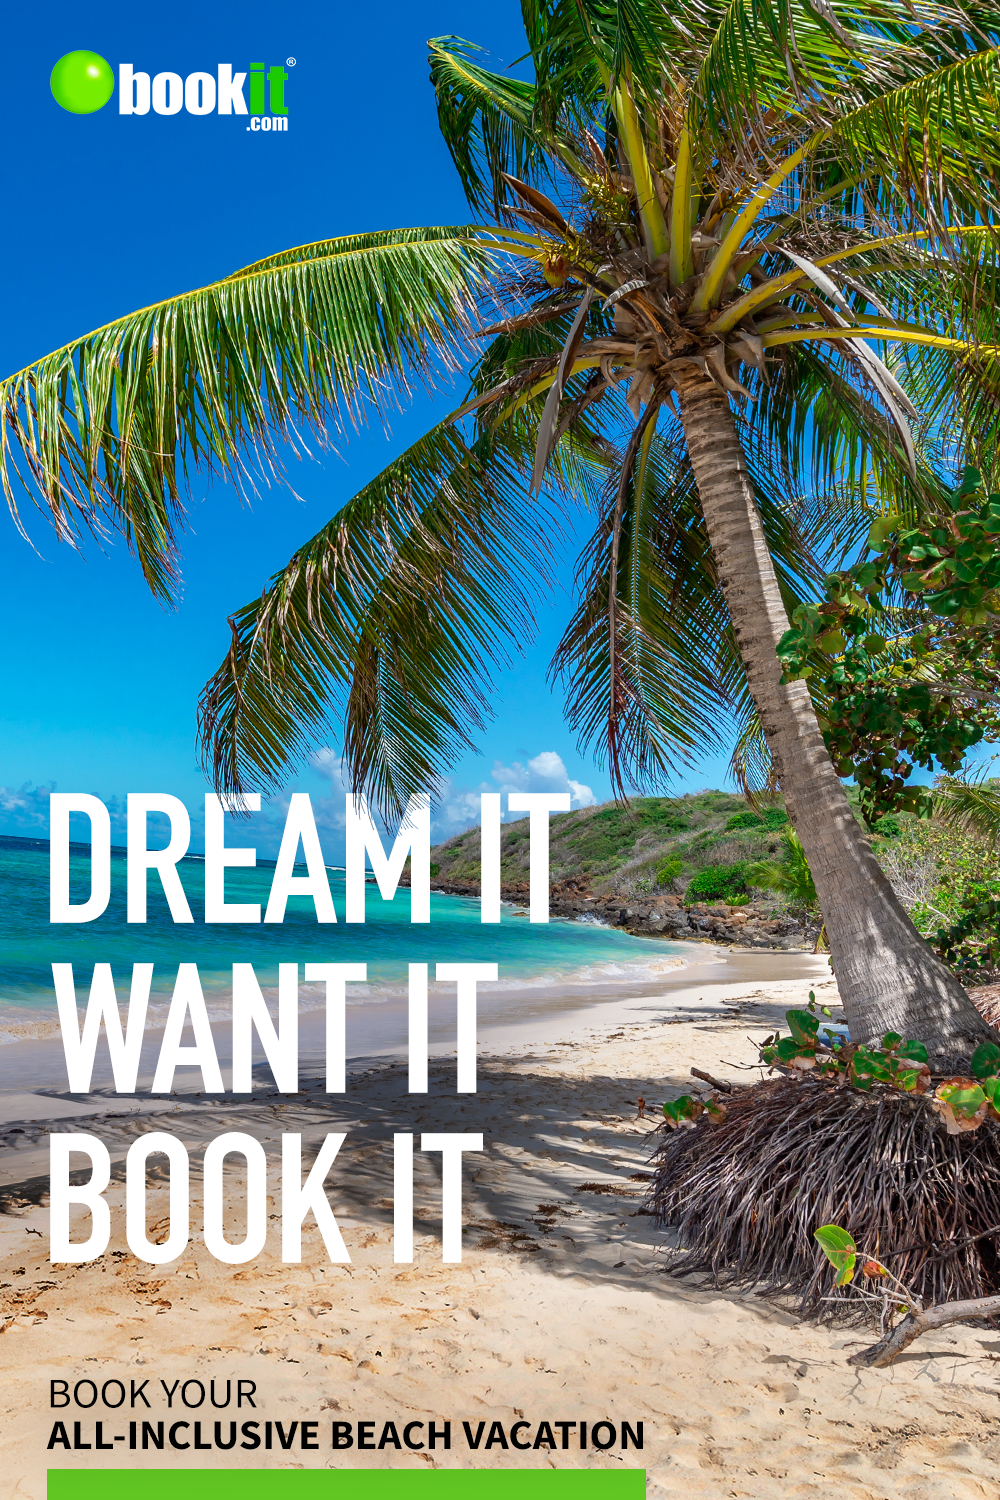 Are You Looking To Book Your Perfect All Inclusive